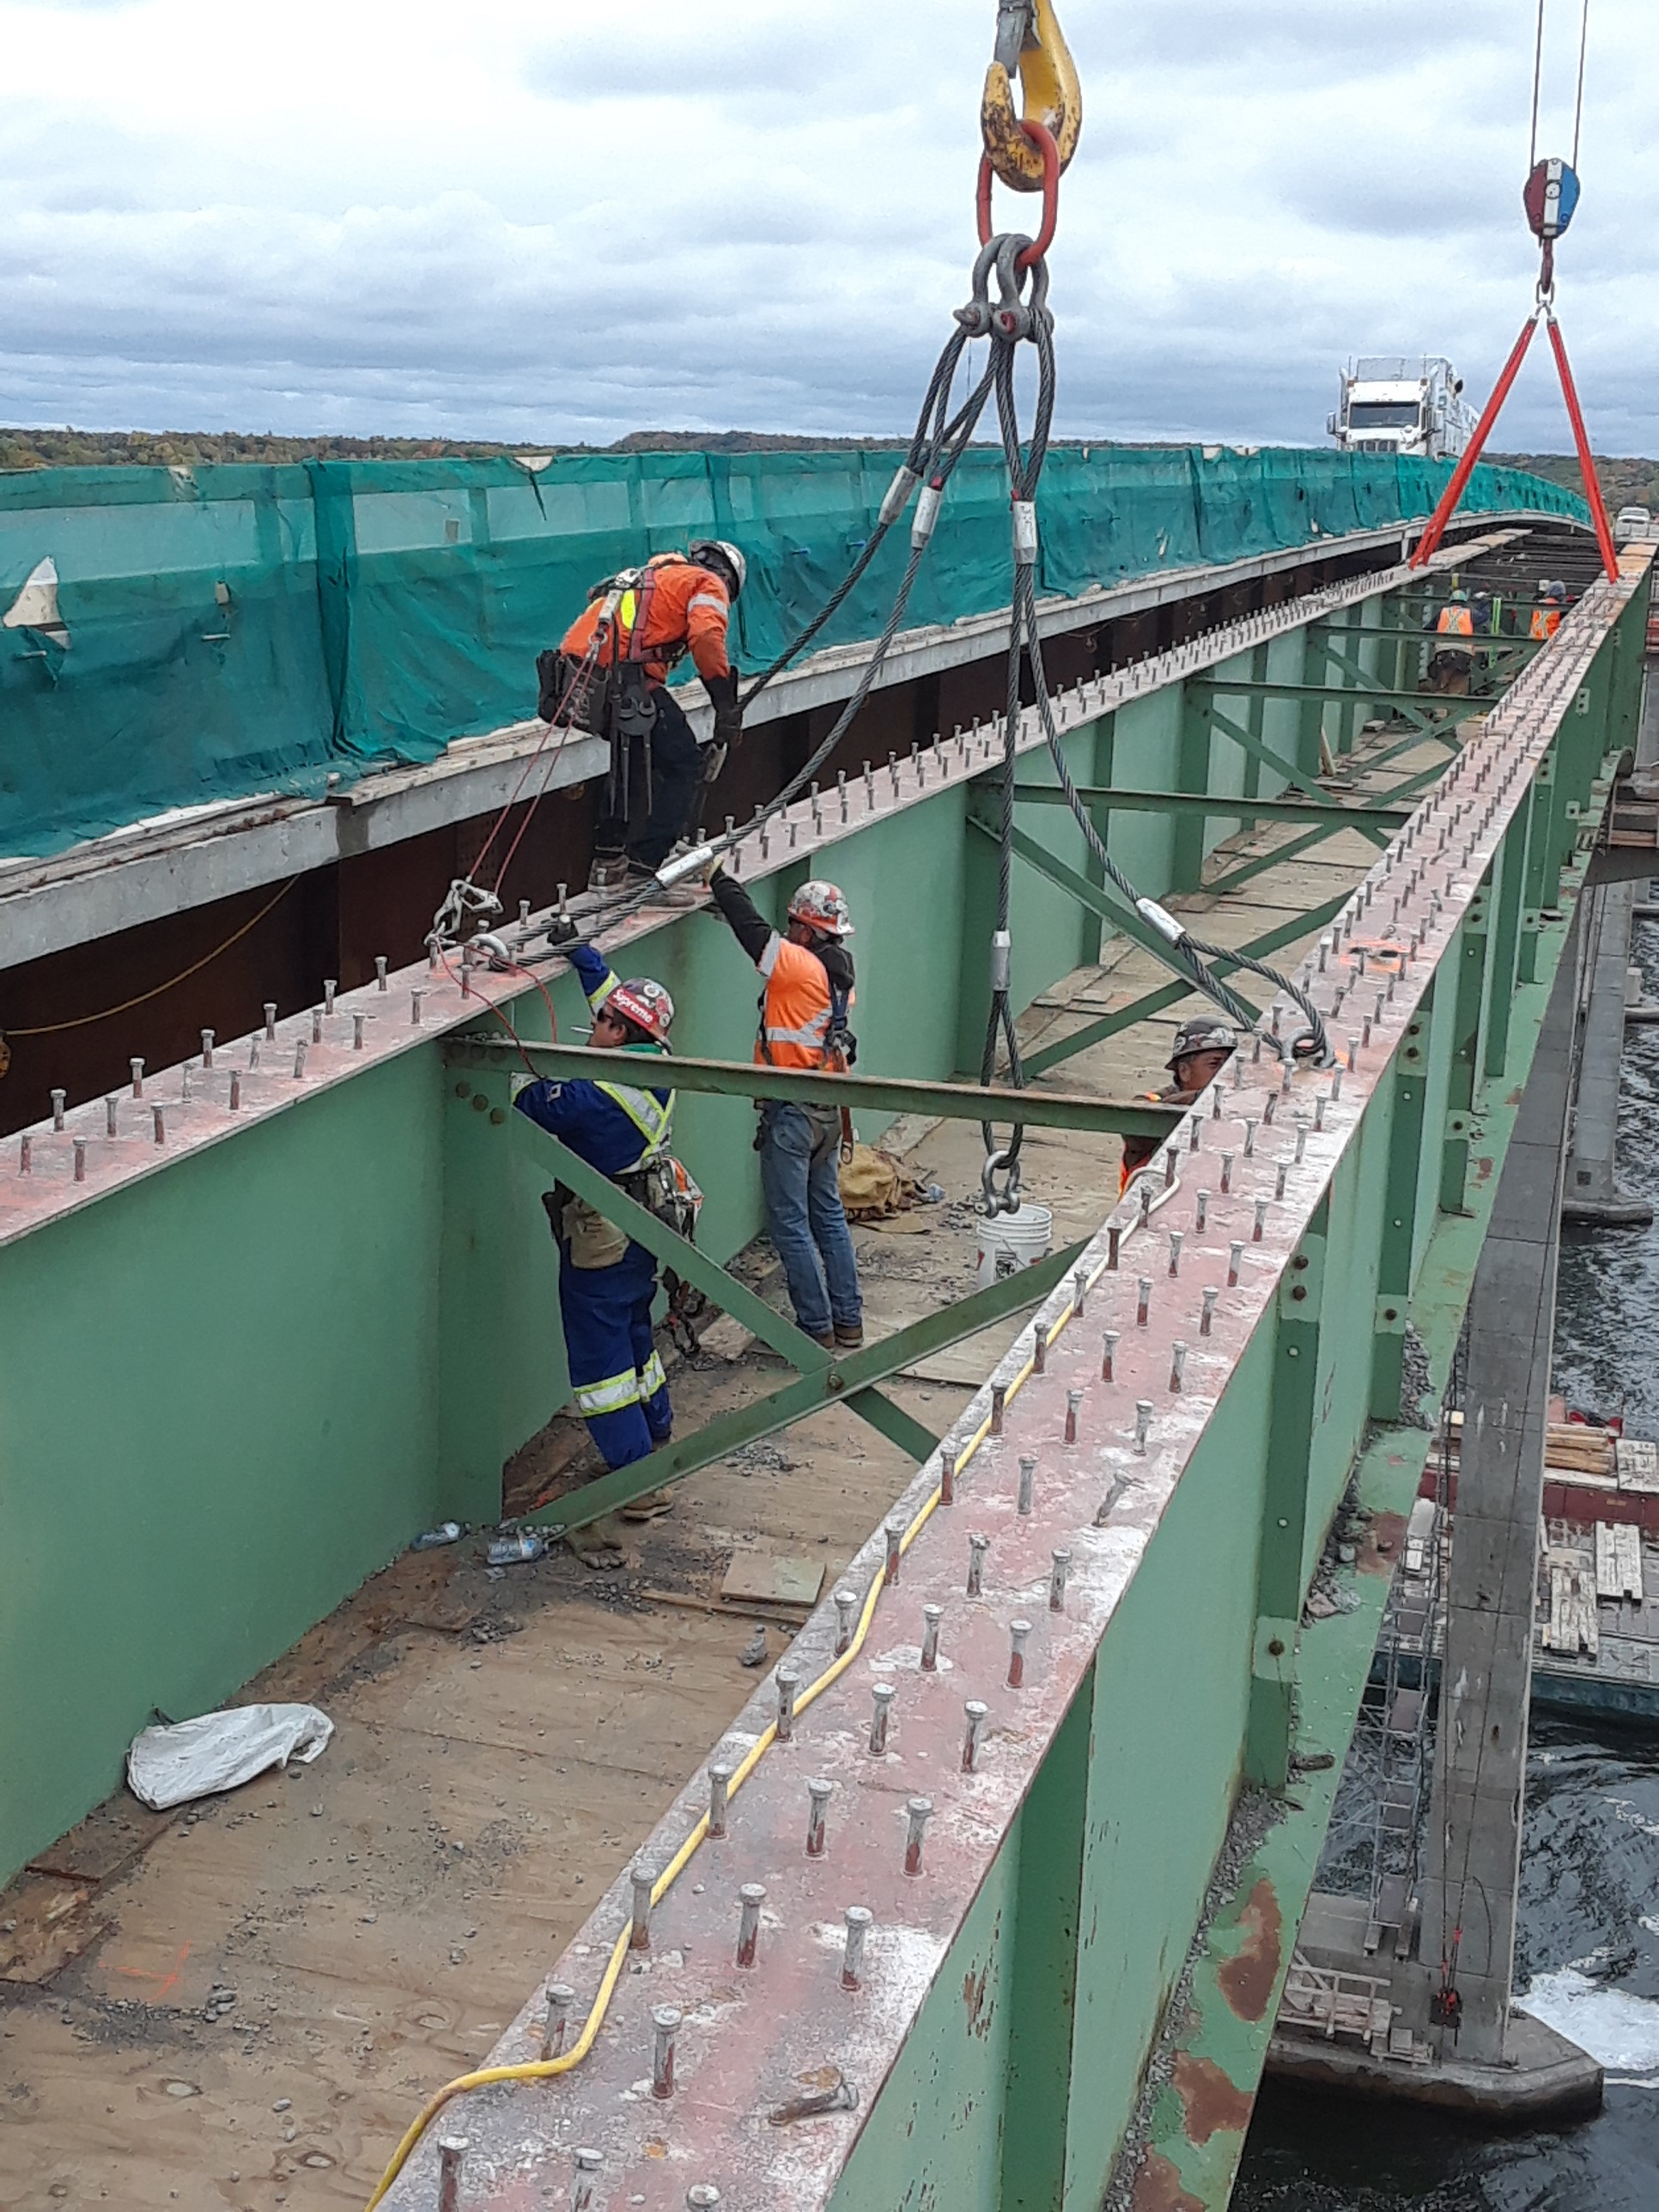 Connecting the rigging for girder removal